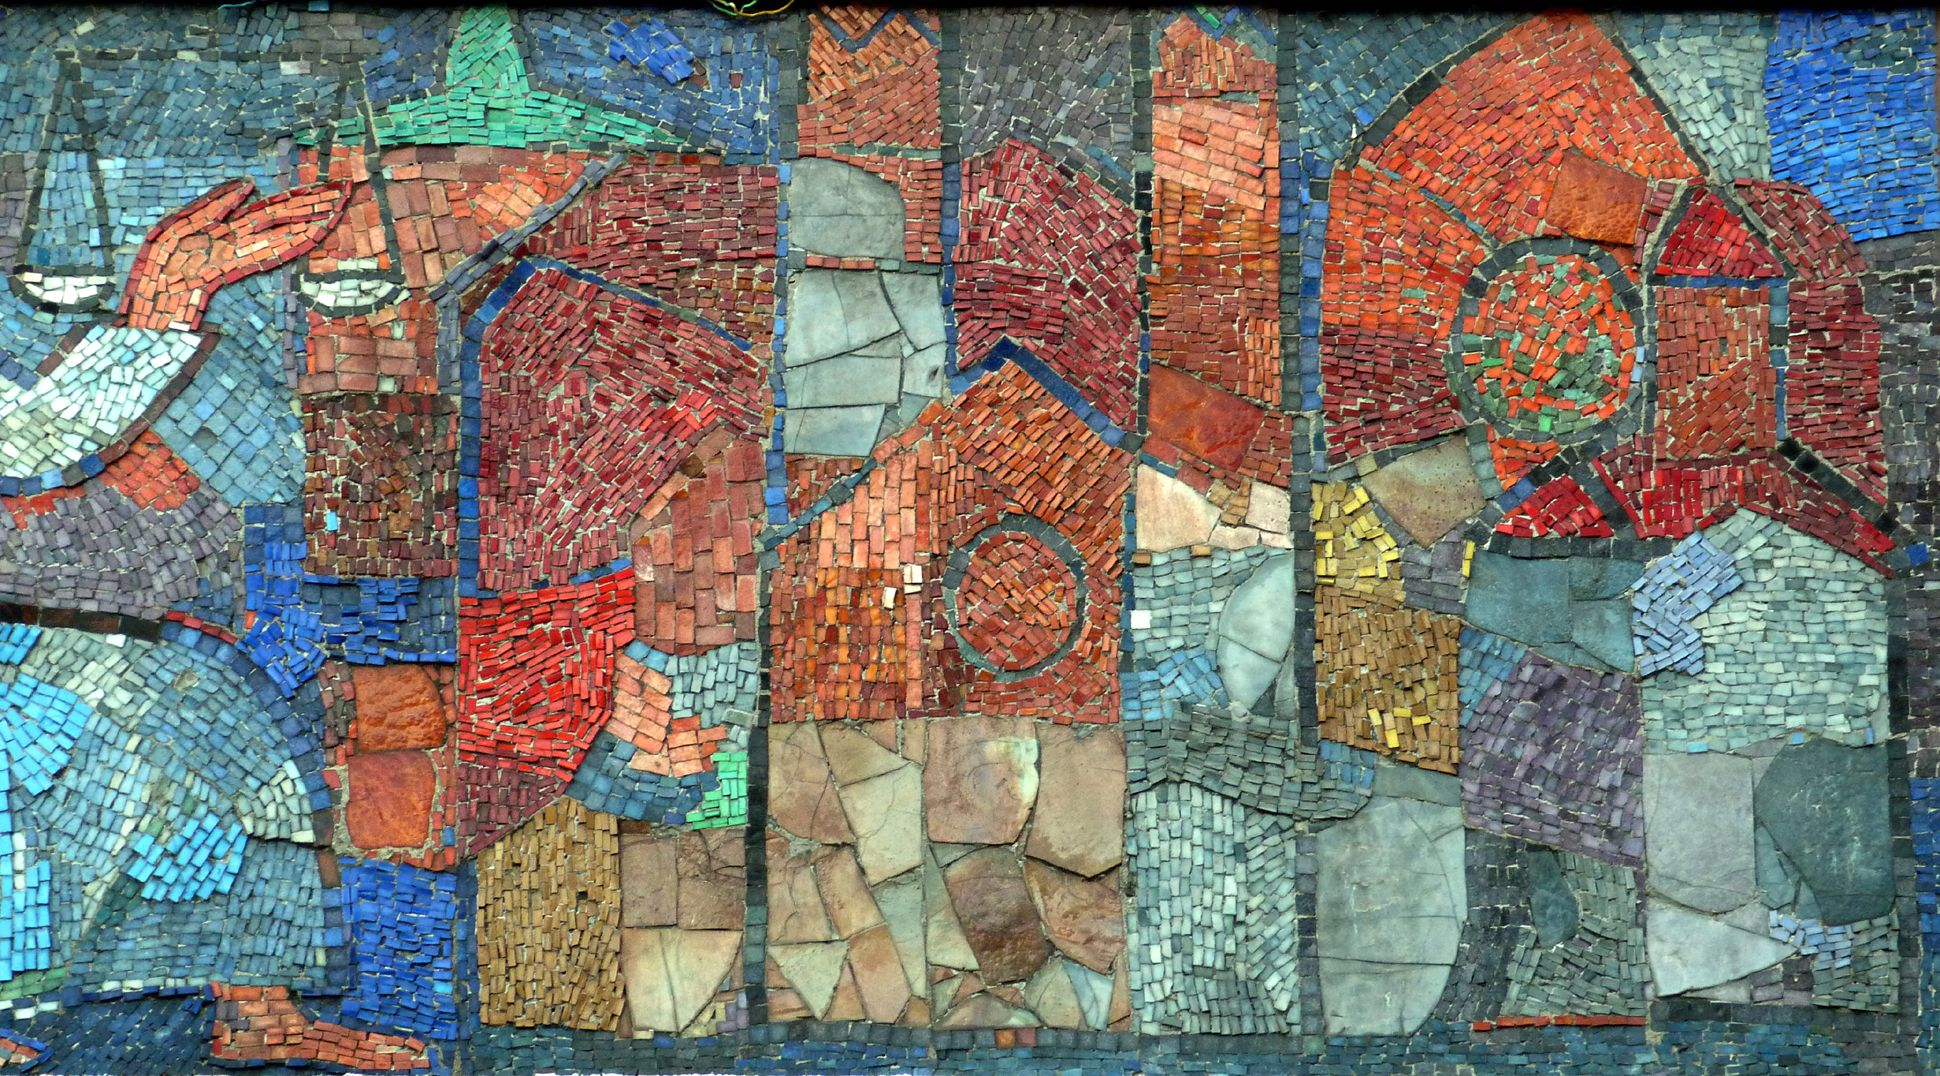 Mosaic on the Main Market (Hauptmarkt) in Nuremberg Abstracted Nuremberg buildings: City Wall Tower , St. Lorenz-Church, Our Lady´s Church